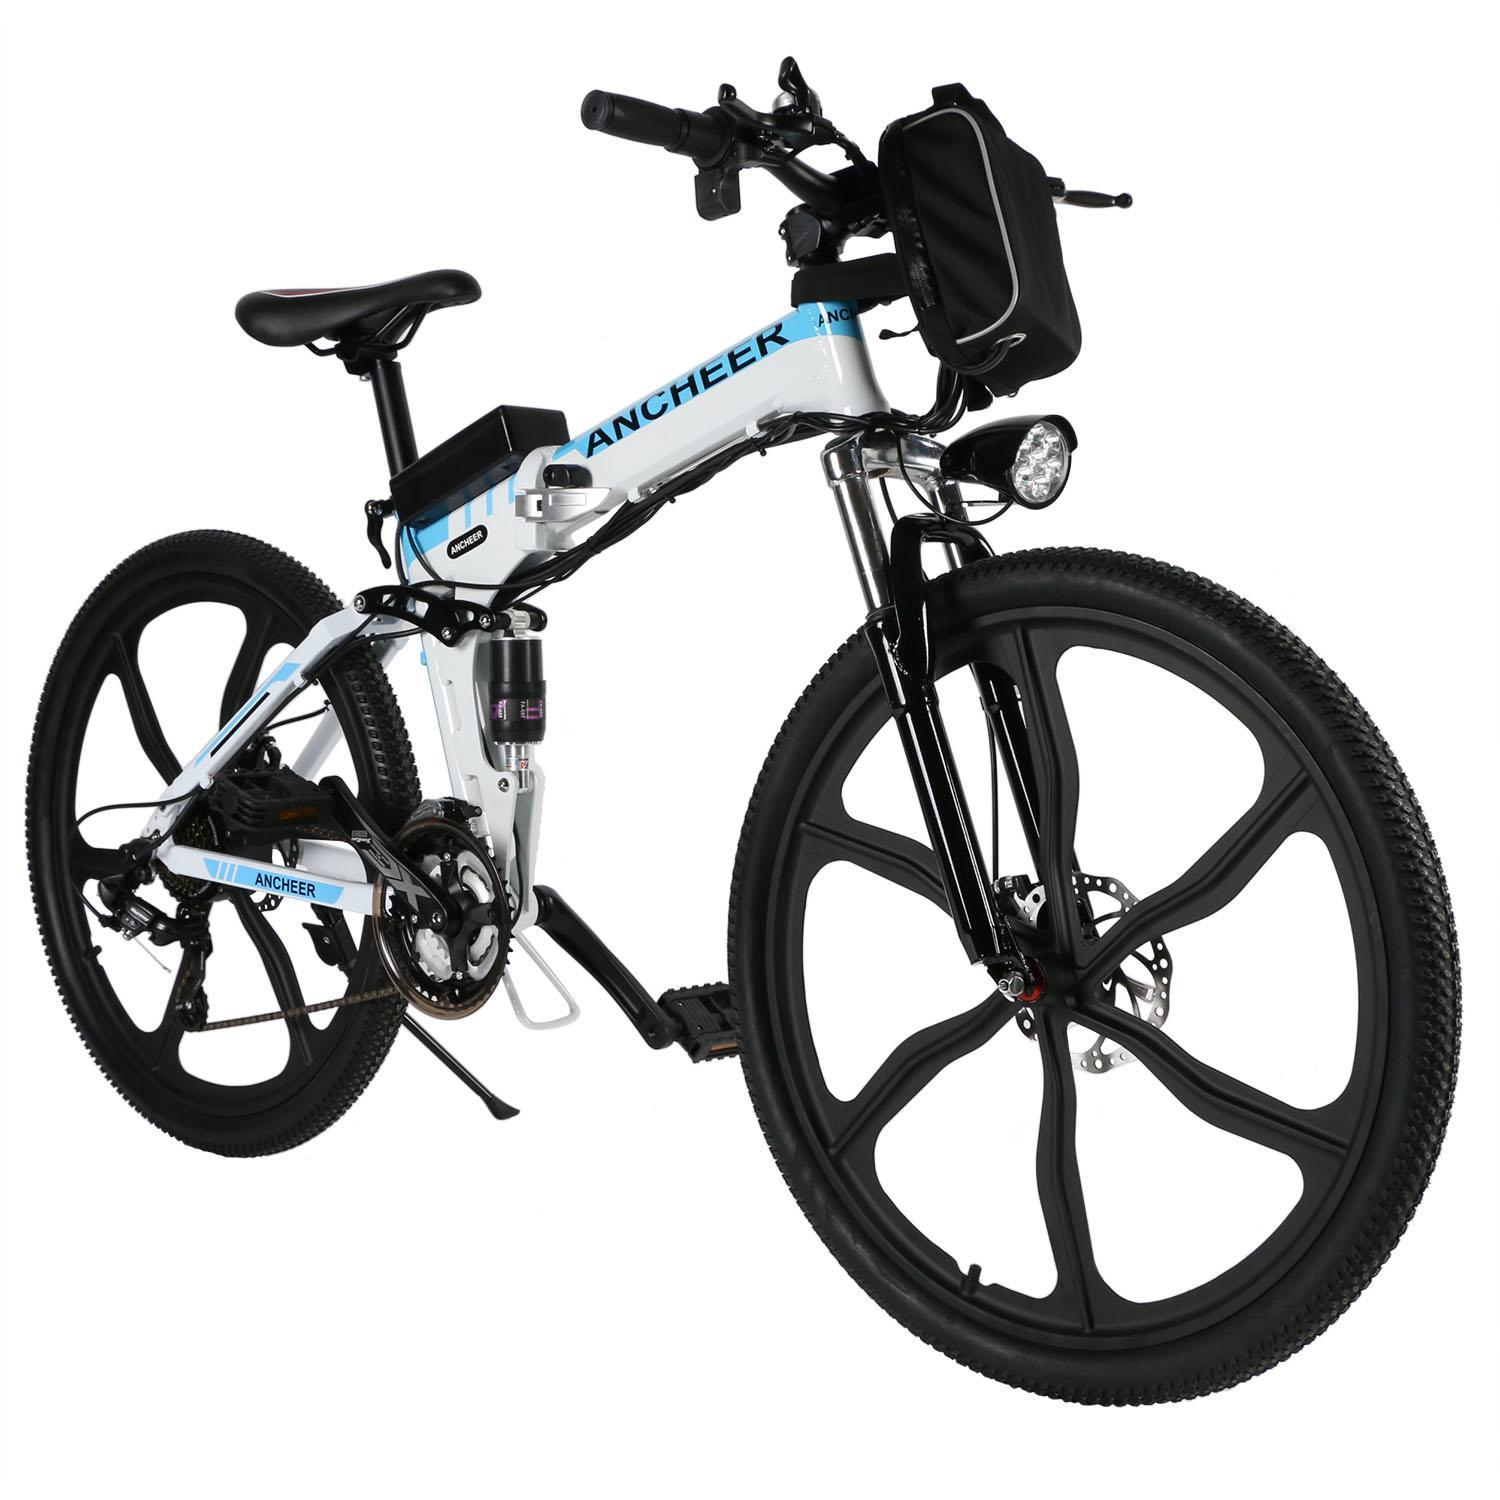 "Lowest Price Ever! Ancheer 26"" 36V Foldable Bike Electric Power Mountain Bike Bicycle with Lithium-Ion Battery Bicycle HITC"